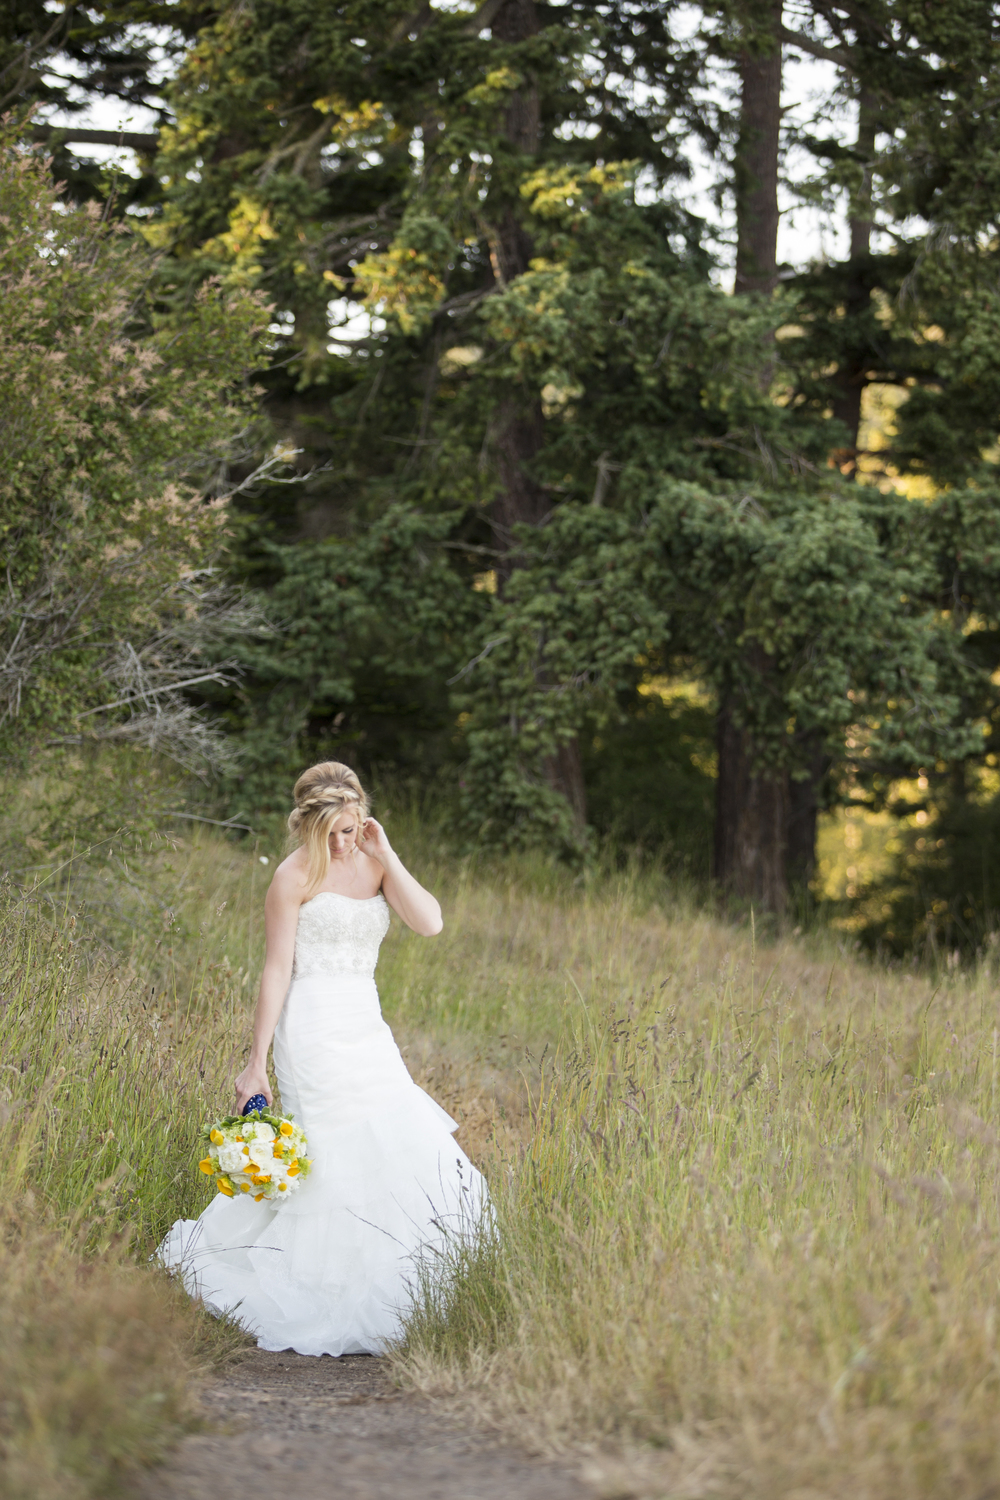 BrookeTaylorStudios_weddingphotographerkayla82.jpg